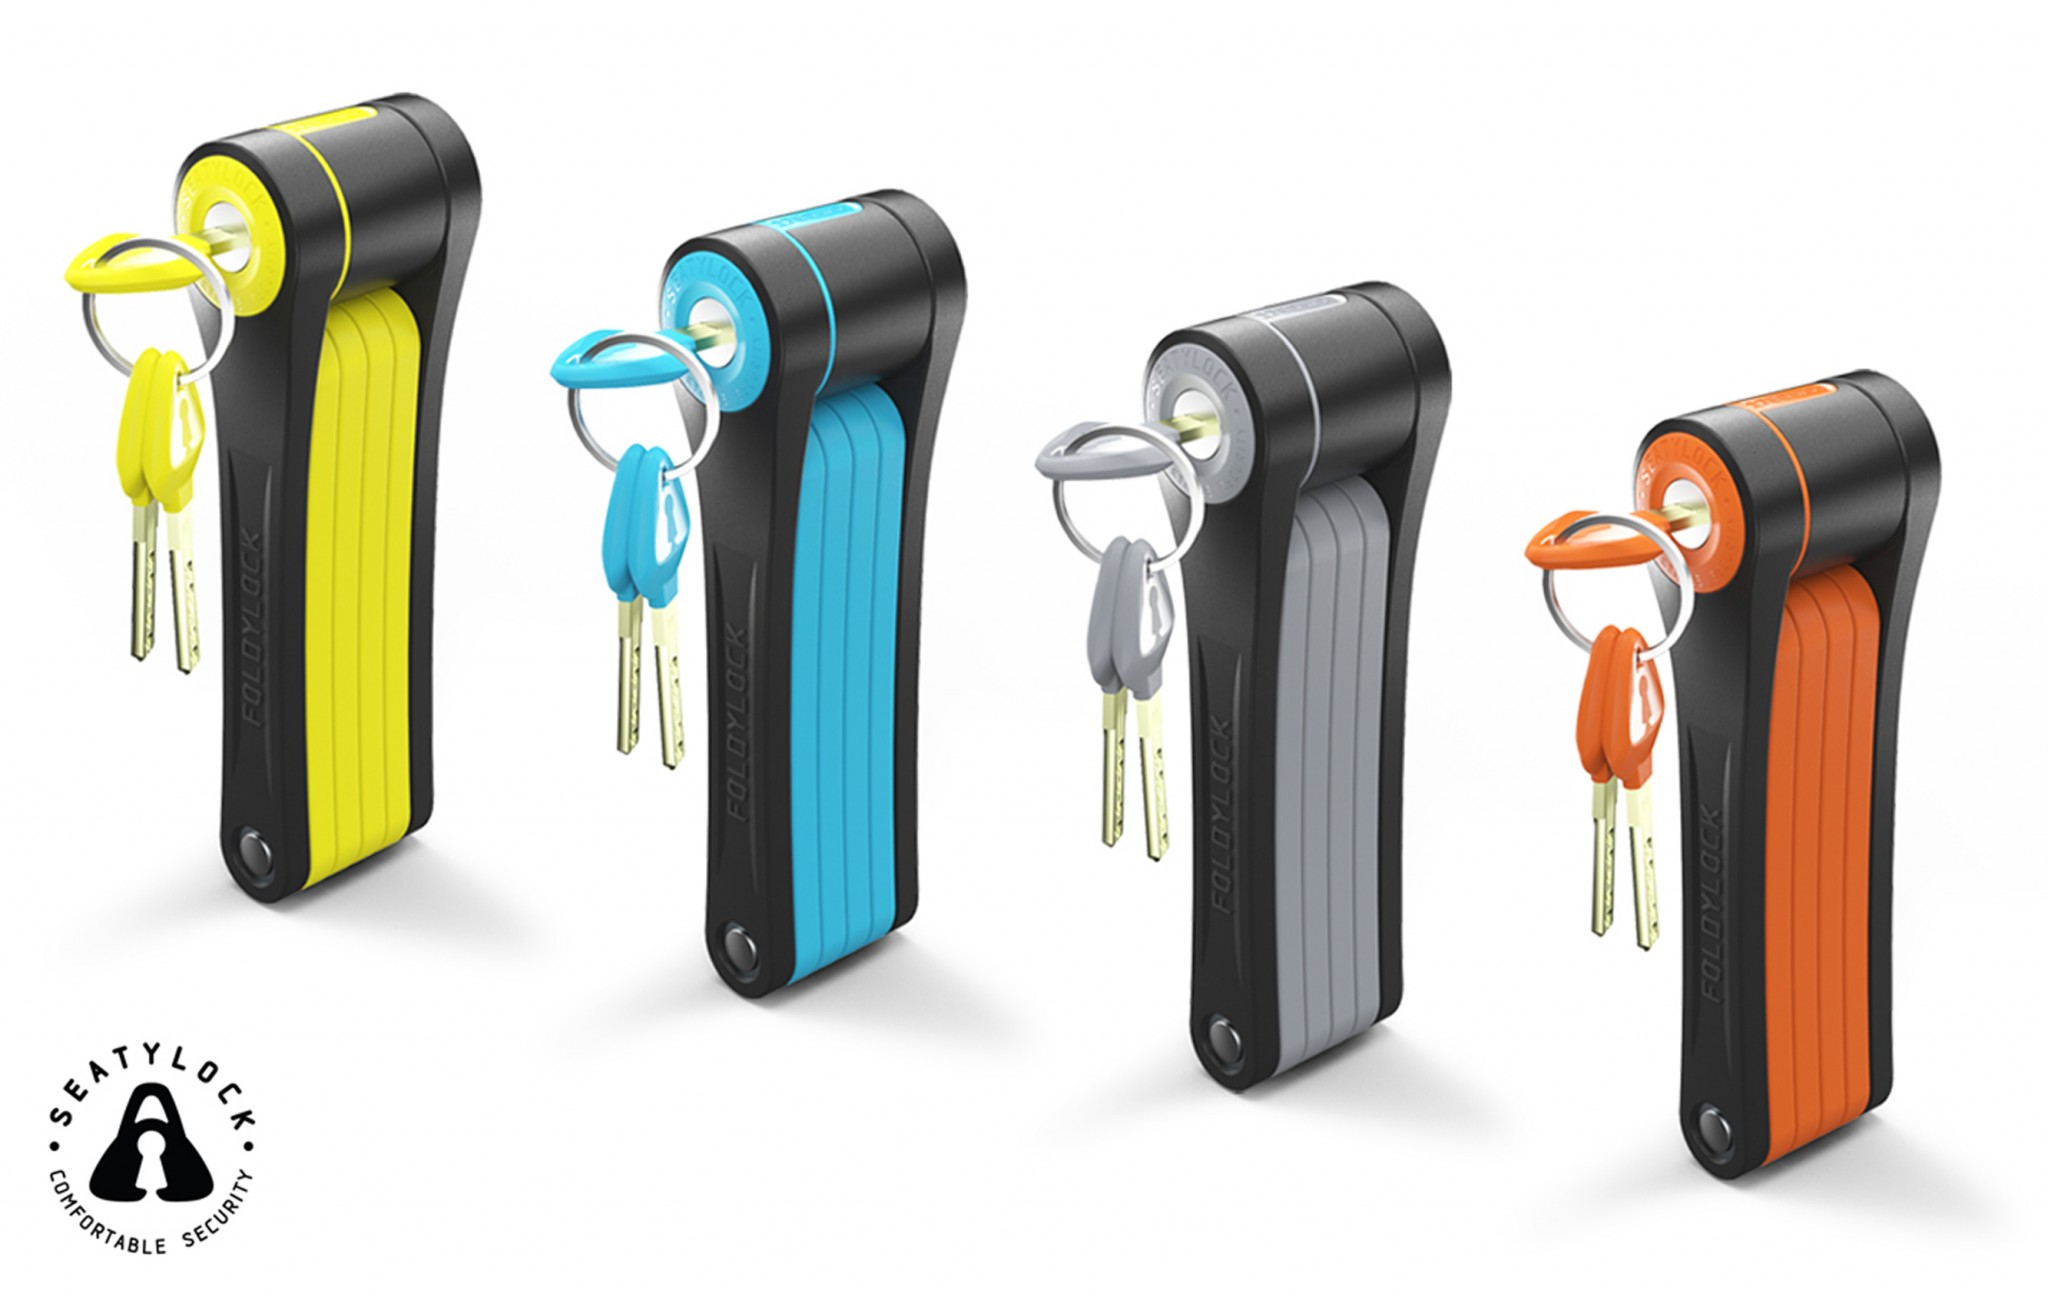 Foldilock from Seatylock comes in an assortment of colors. Photo: courtesy